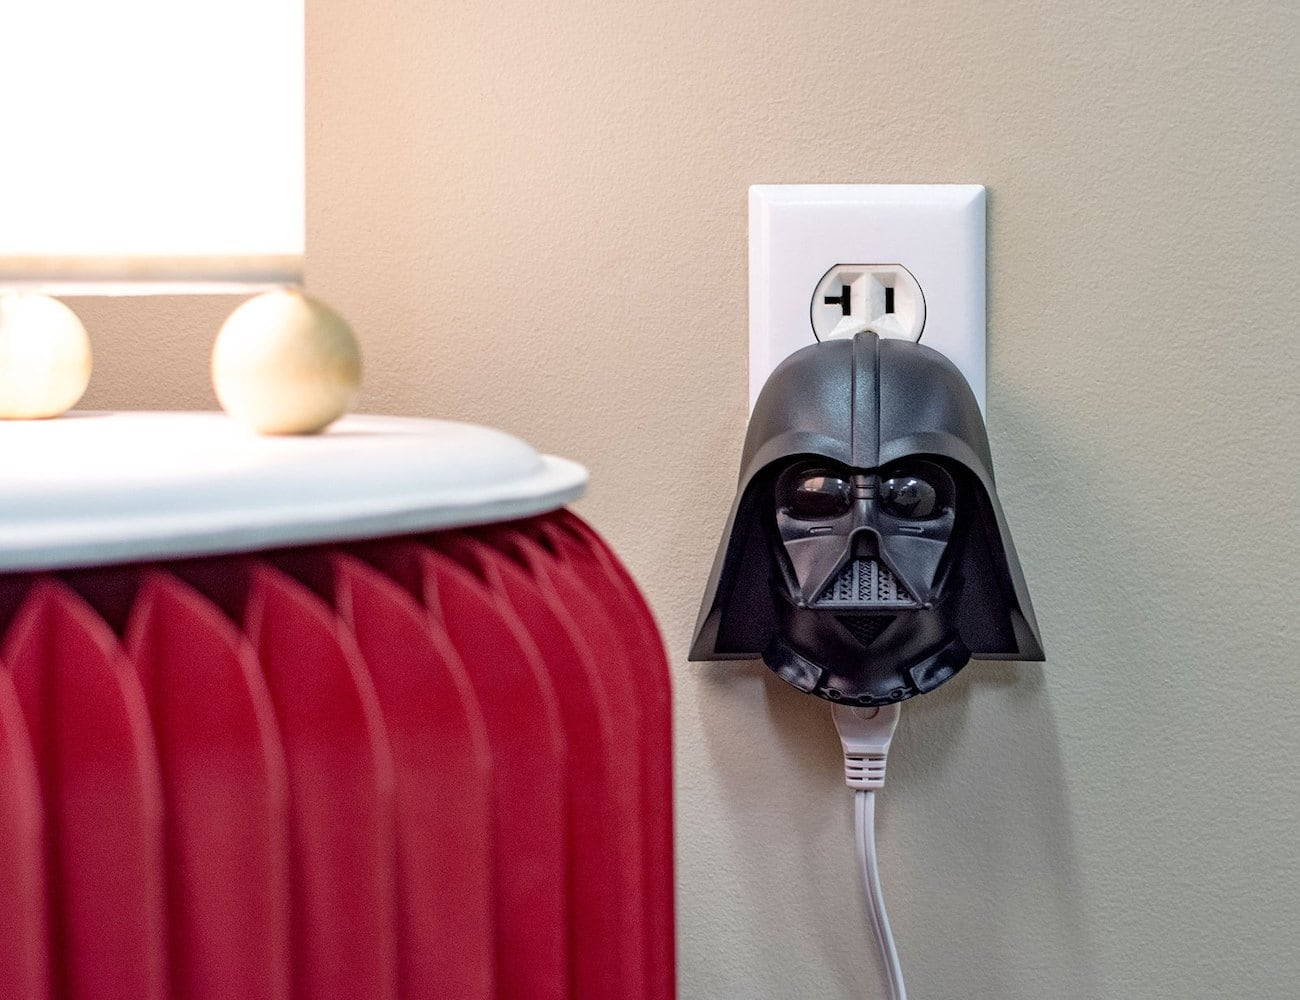 Star Wars Darth Vader Clapper